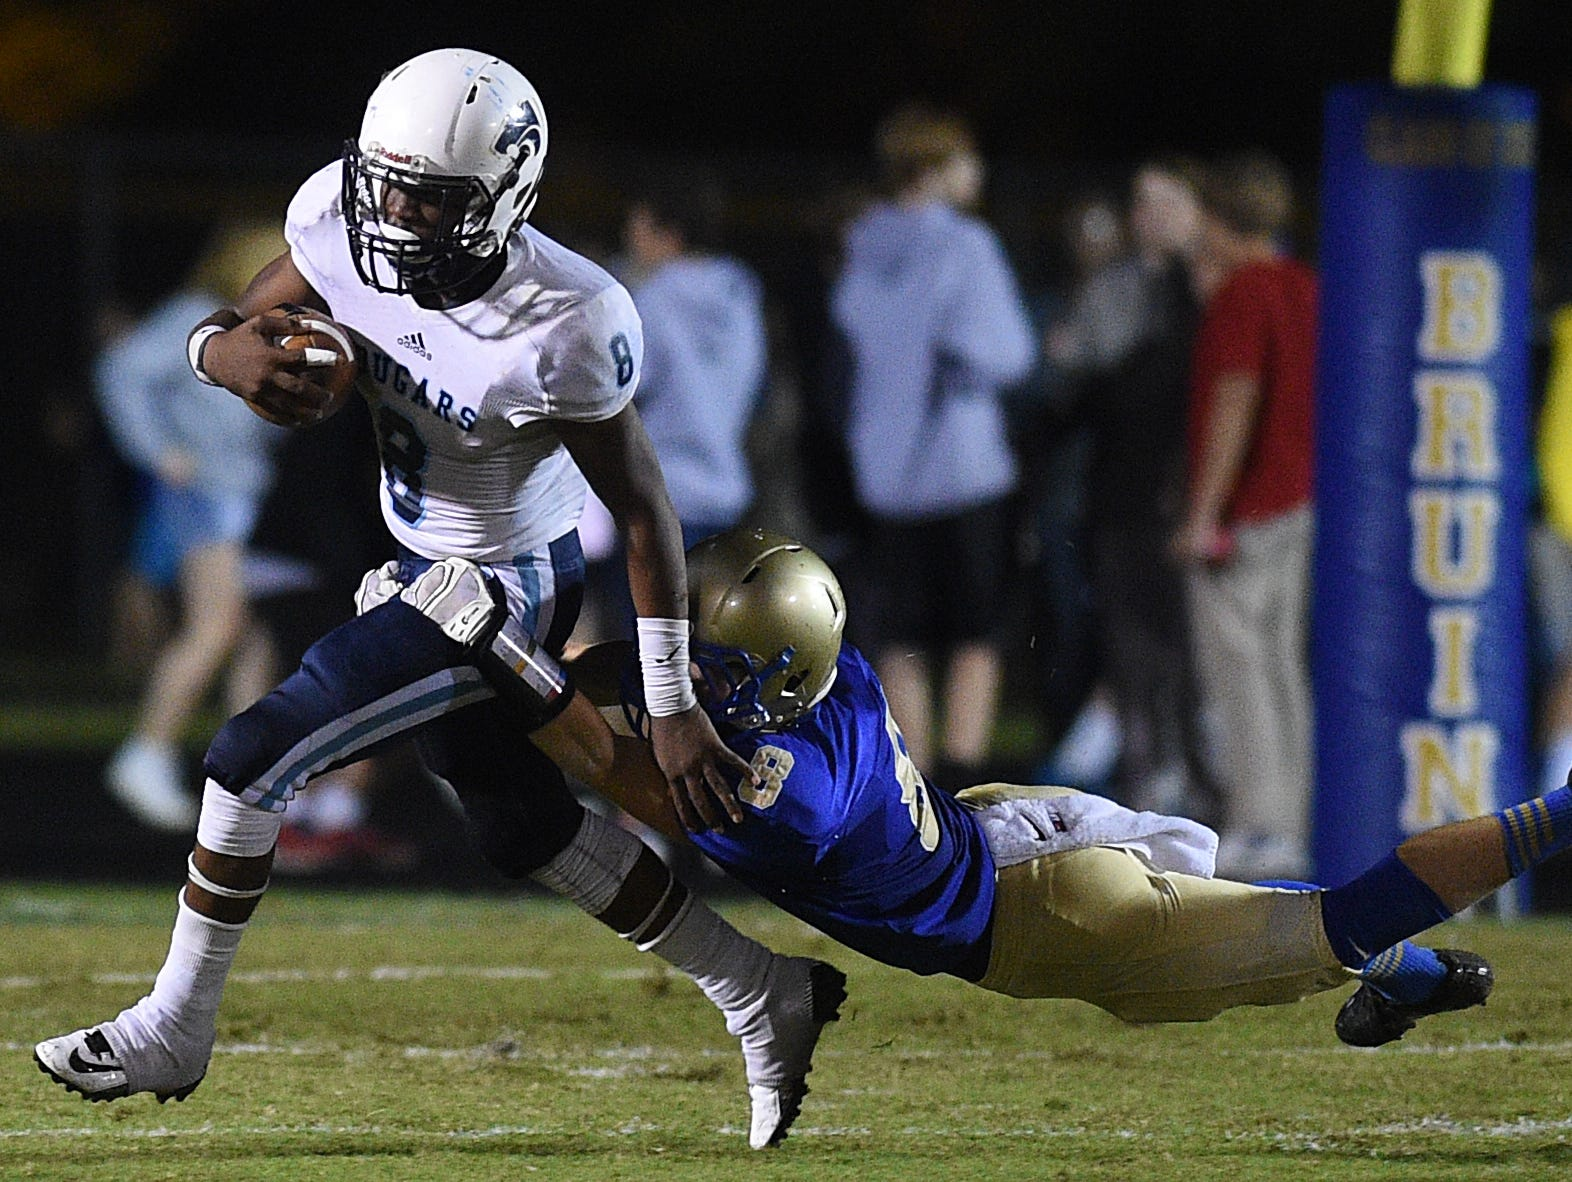 Centennial running back Mondu Sawyers (8) runs as Brentwood's Spencer Schwartz (8) tries to tackle him during a game at Brentwood on Friday.